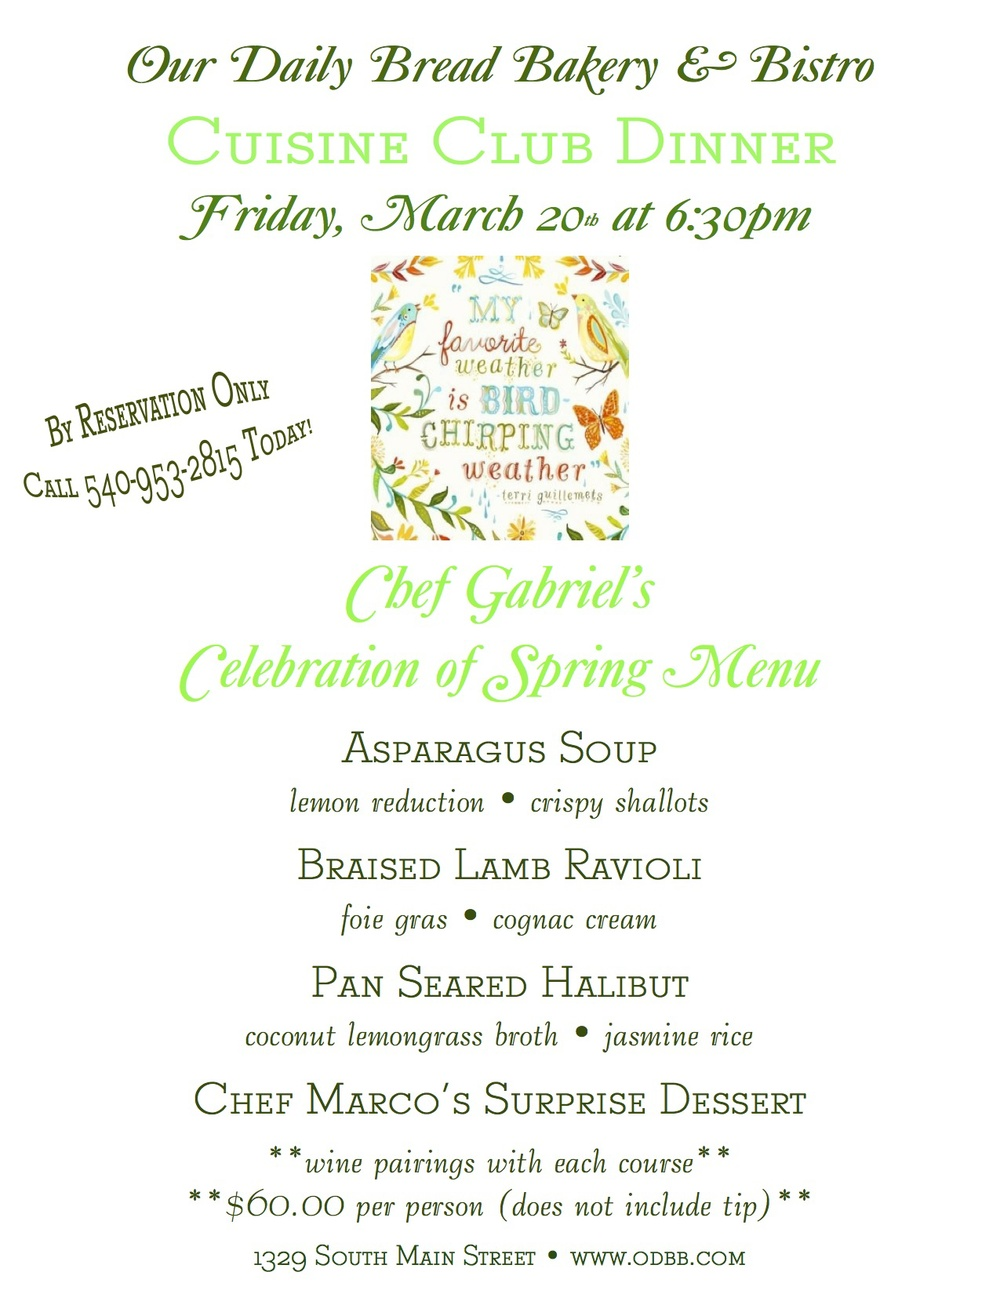 cuisineclubmarchdinnerspring